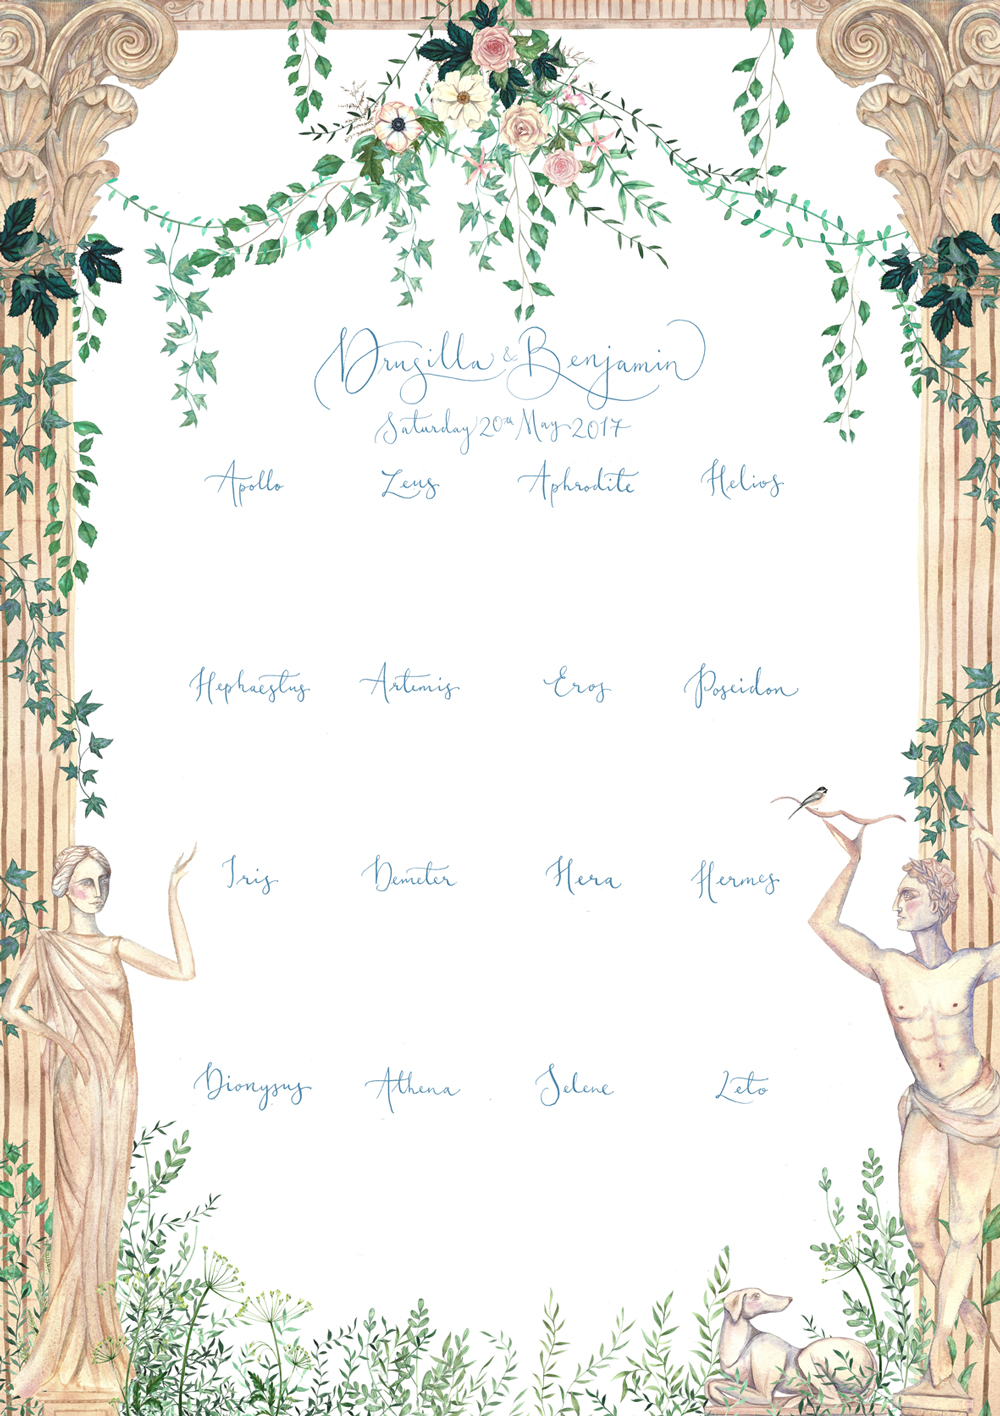 Drusilla-Table-Plan-Web.jpg